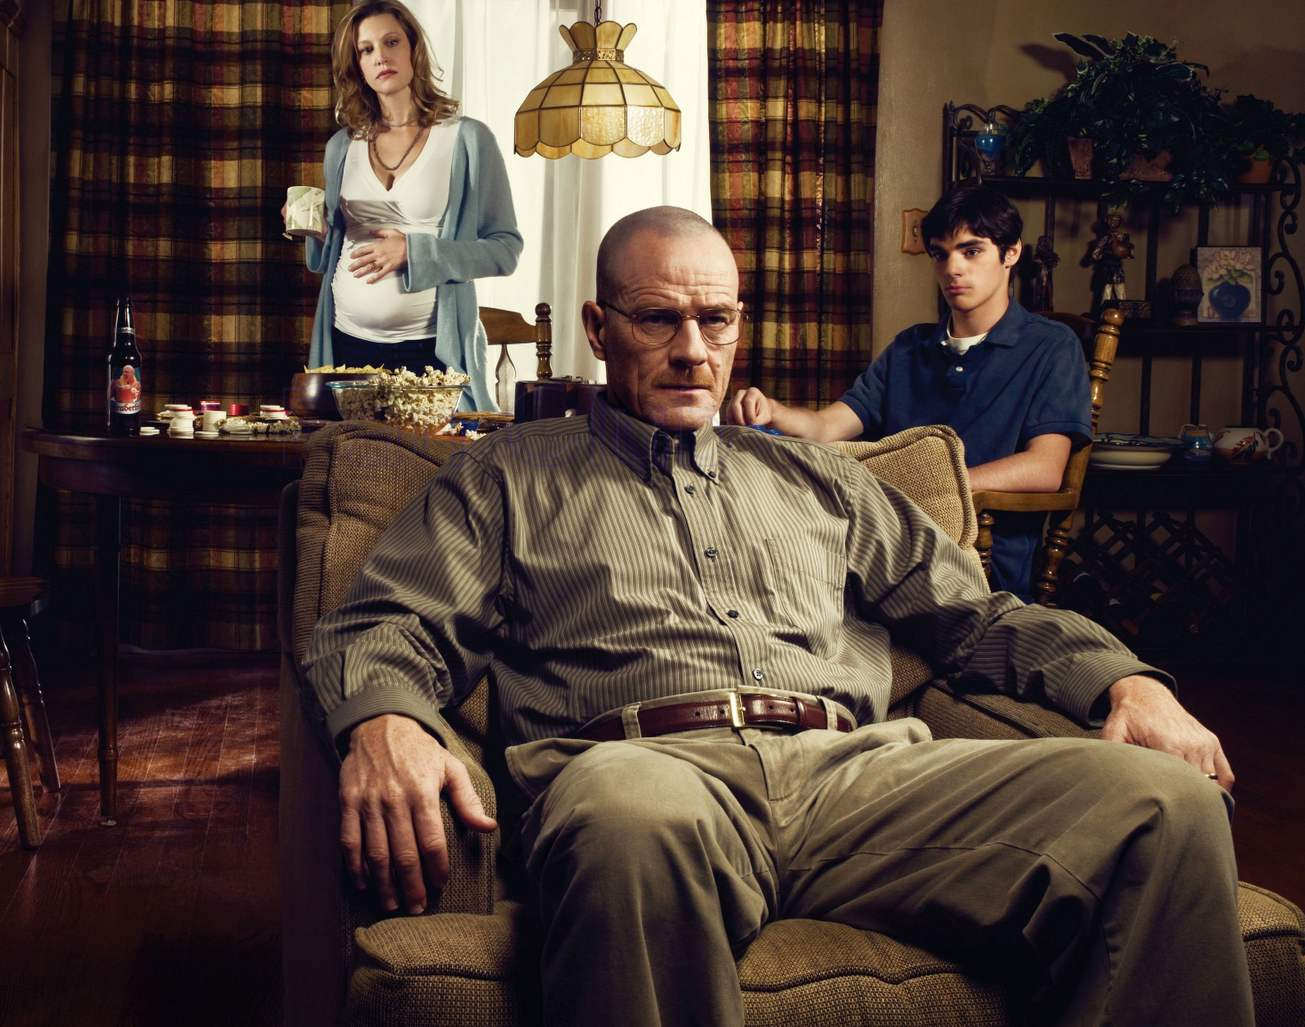 Schuyler White (Anna Gunn) apprehensively waits to see what husband Walter White (Bryan Cranston) will do next, as does son Walter, Jr. (R.J. Mitte) in Breaking Bad.